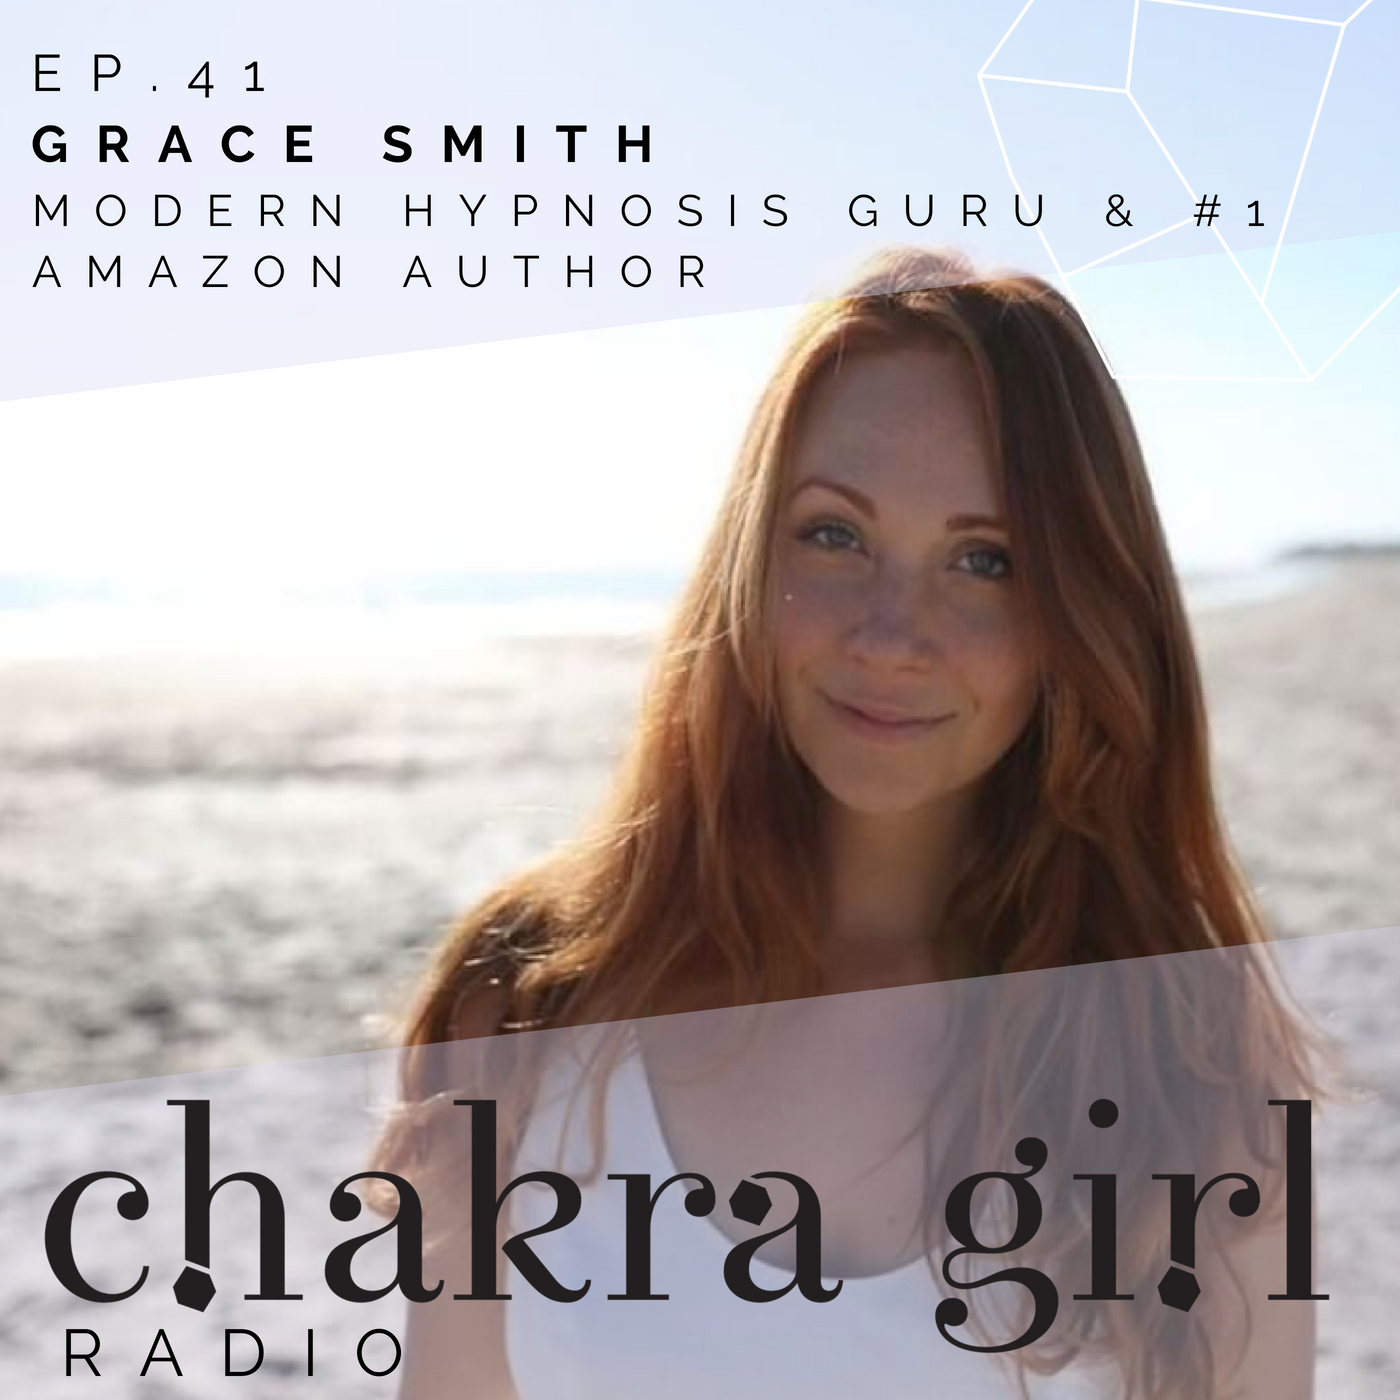 CHAKRA GIRL RADIO GRACE SMITH.png